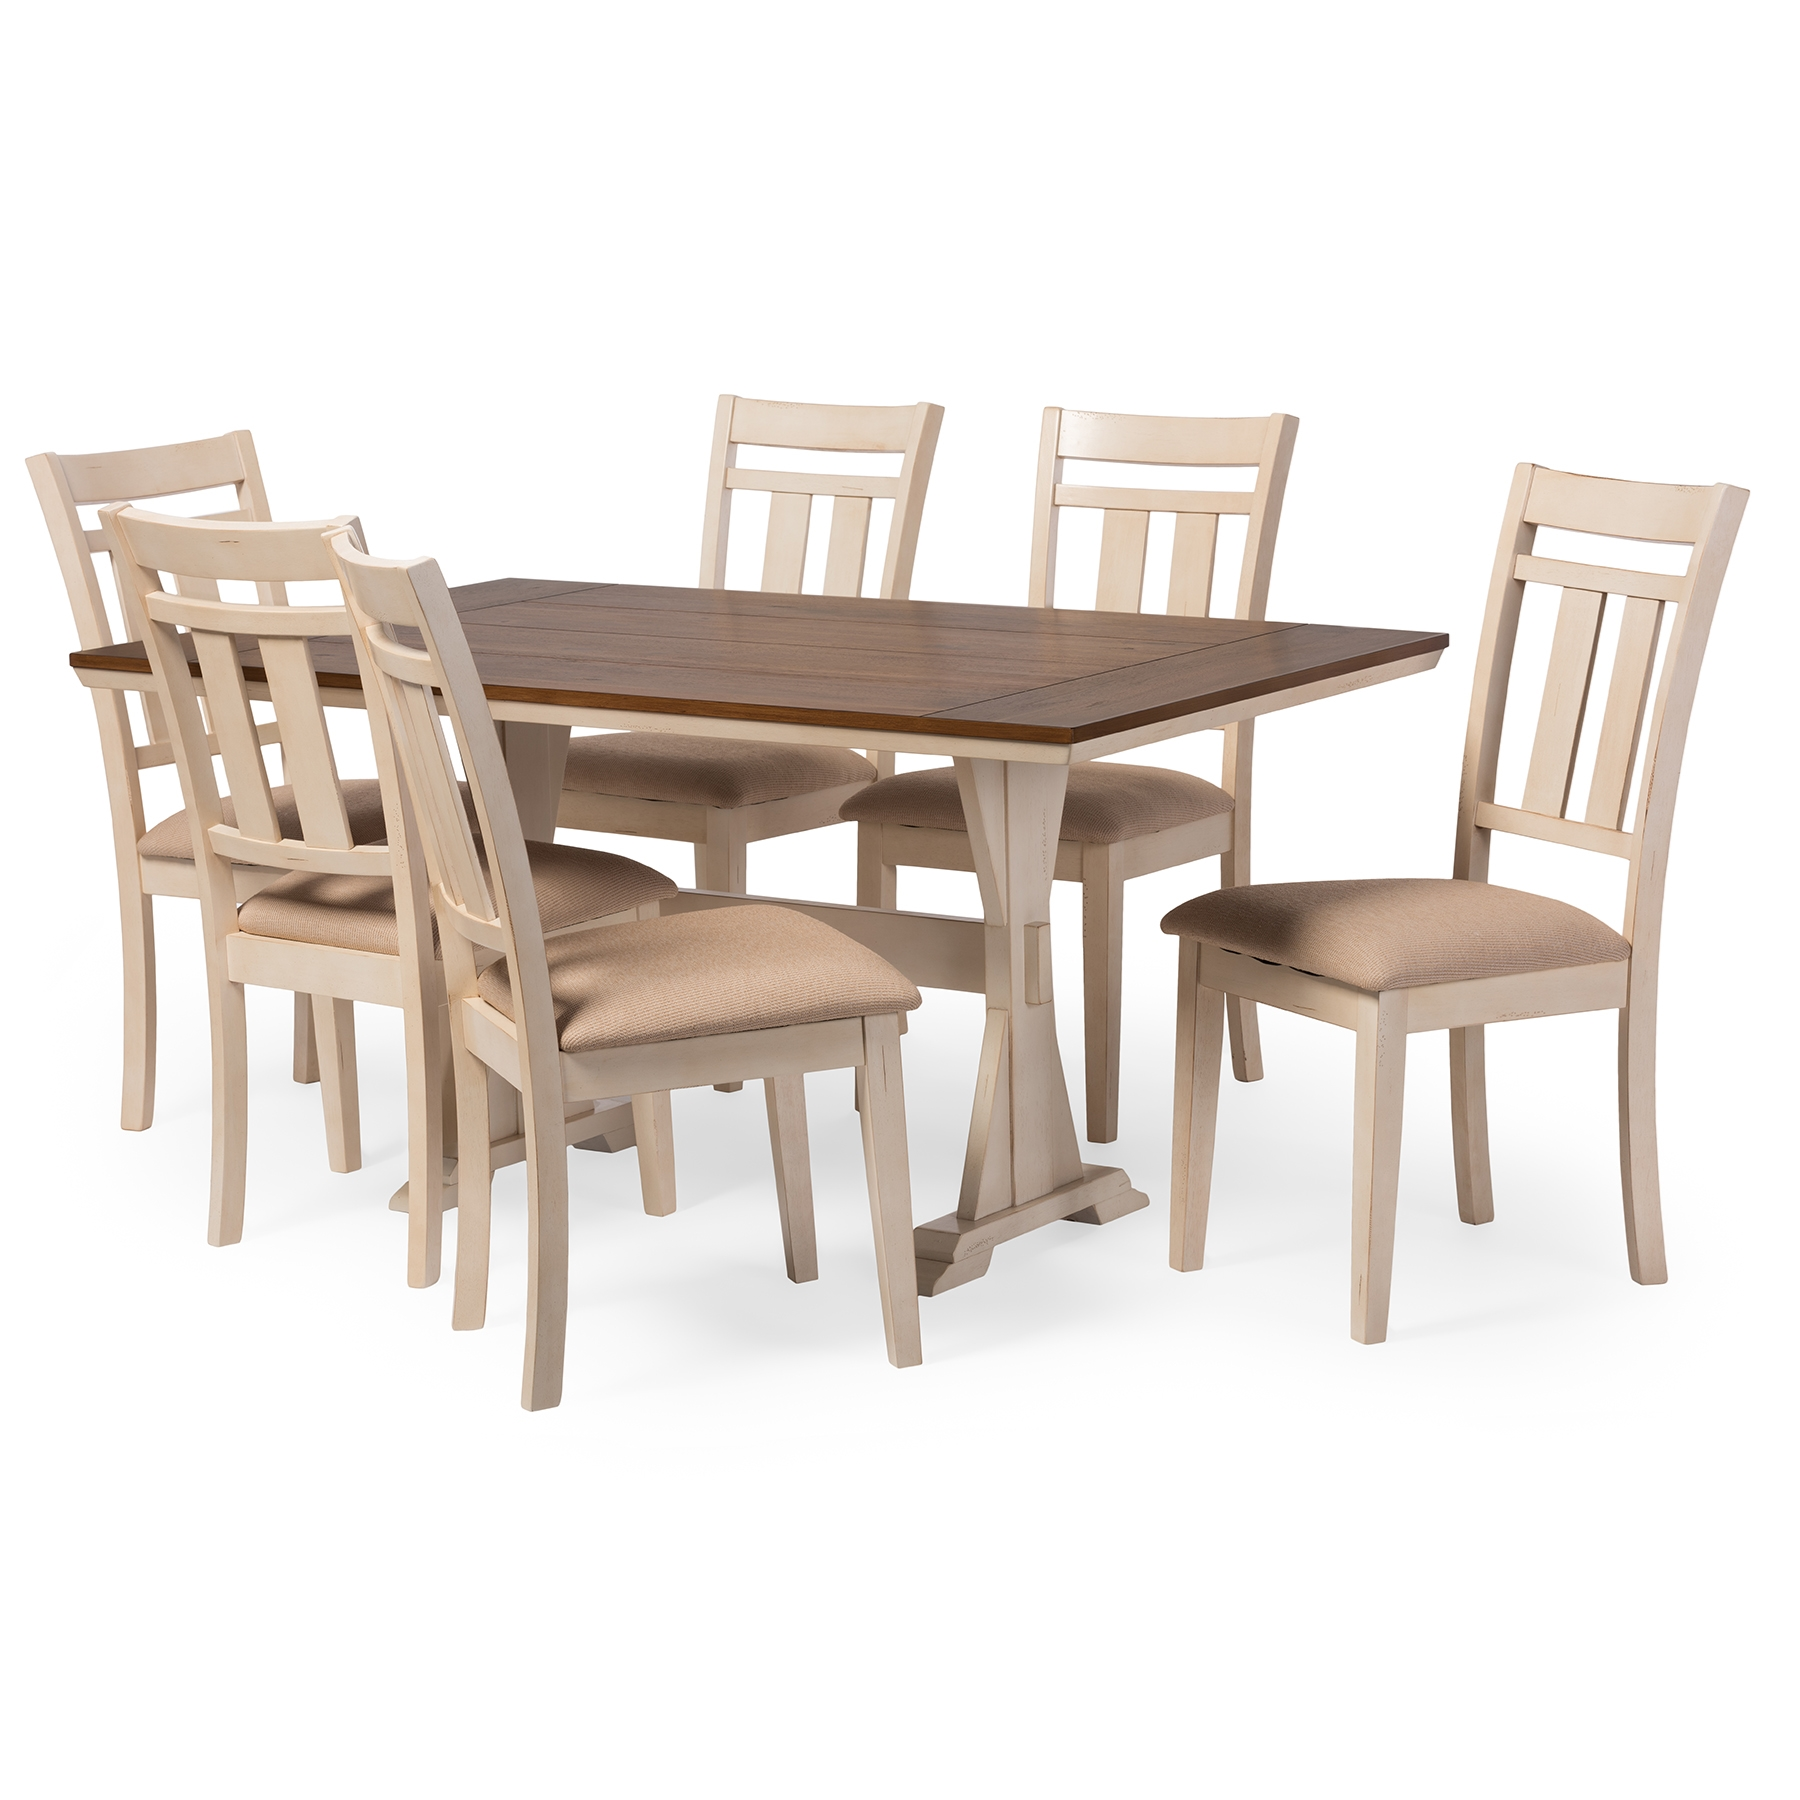 baxton studio wholesale dining sets wholesale dining room furniture baxton studio furniture